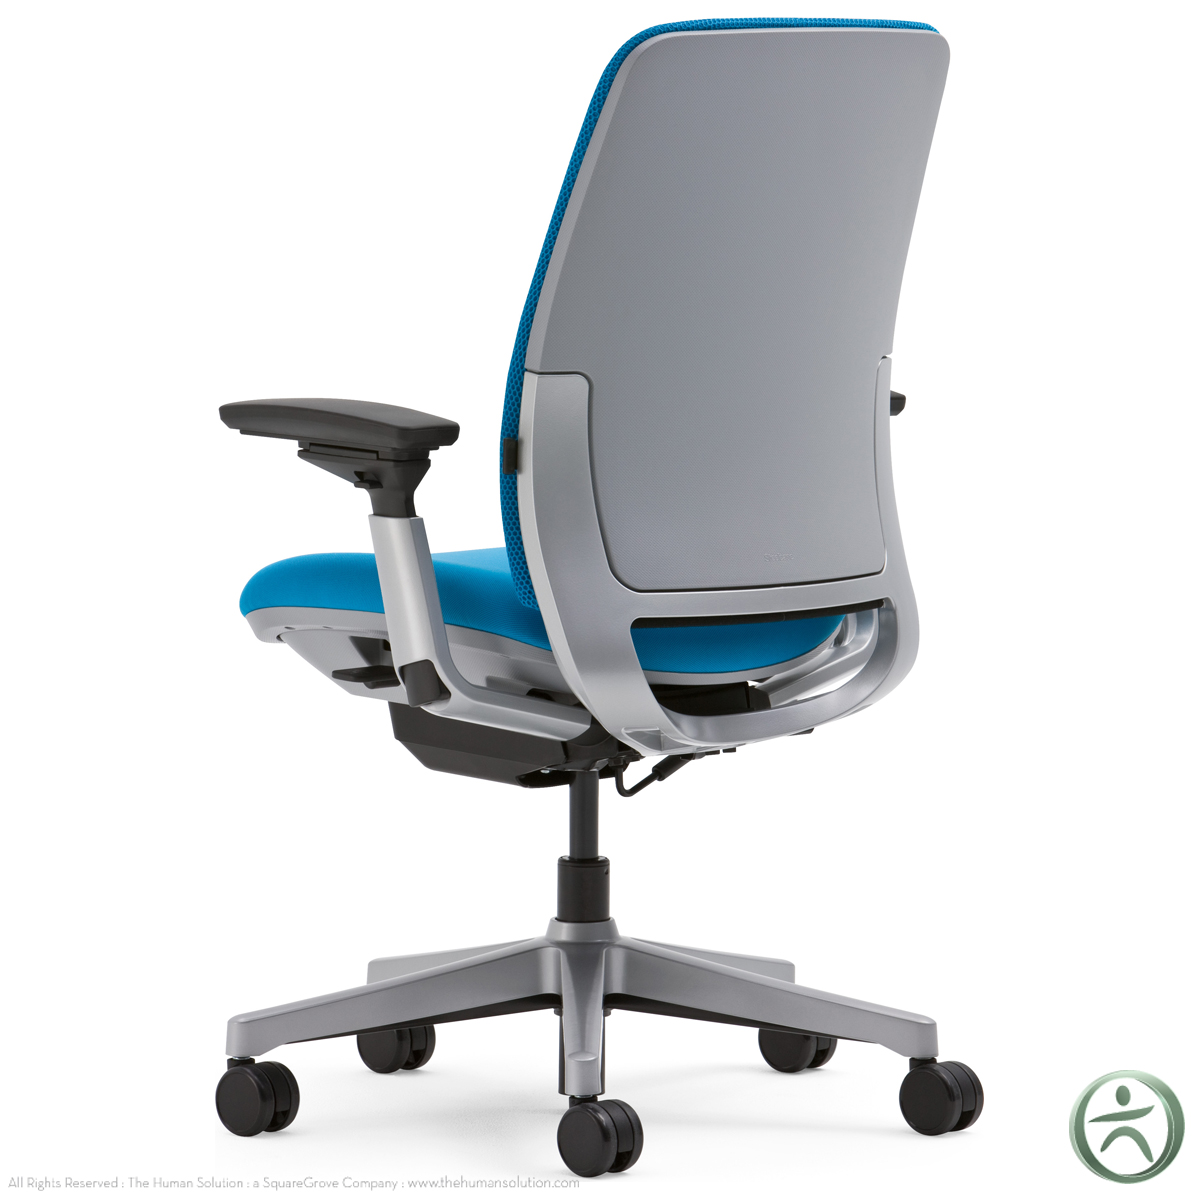 Steelcase Amia Chair  Steelcase Amia Chair Family